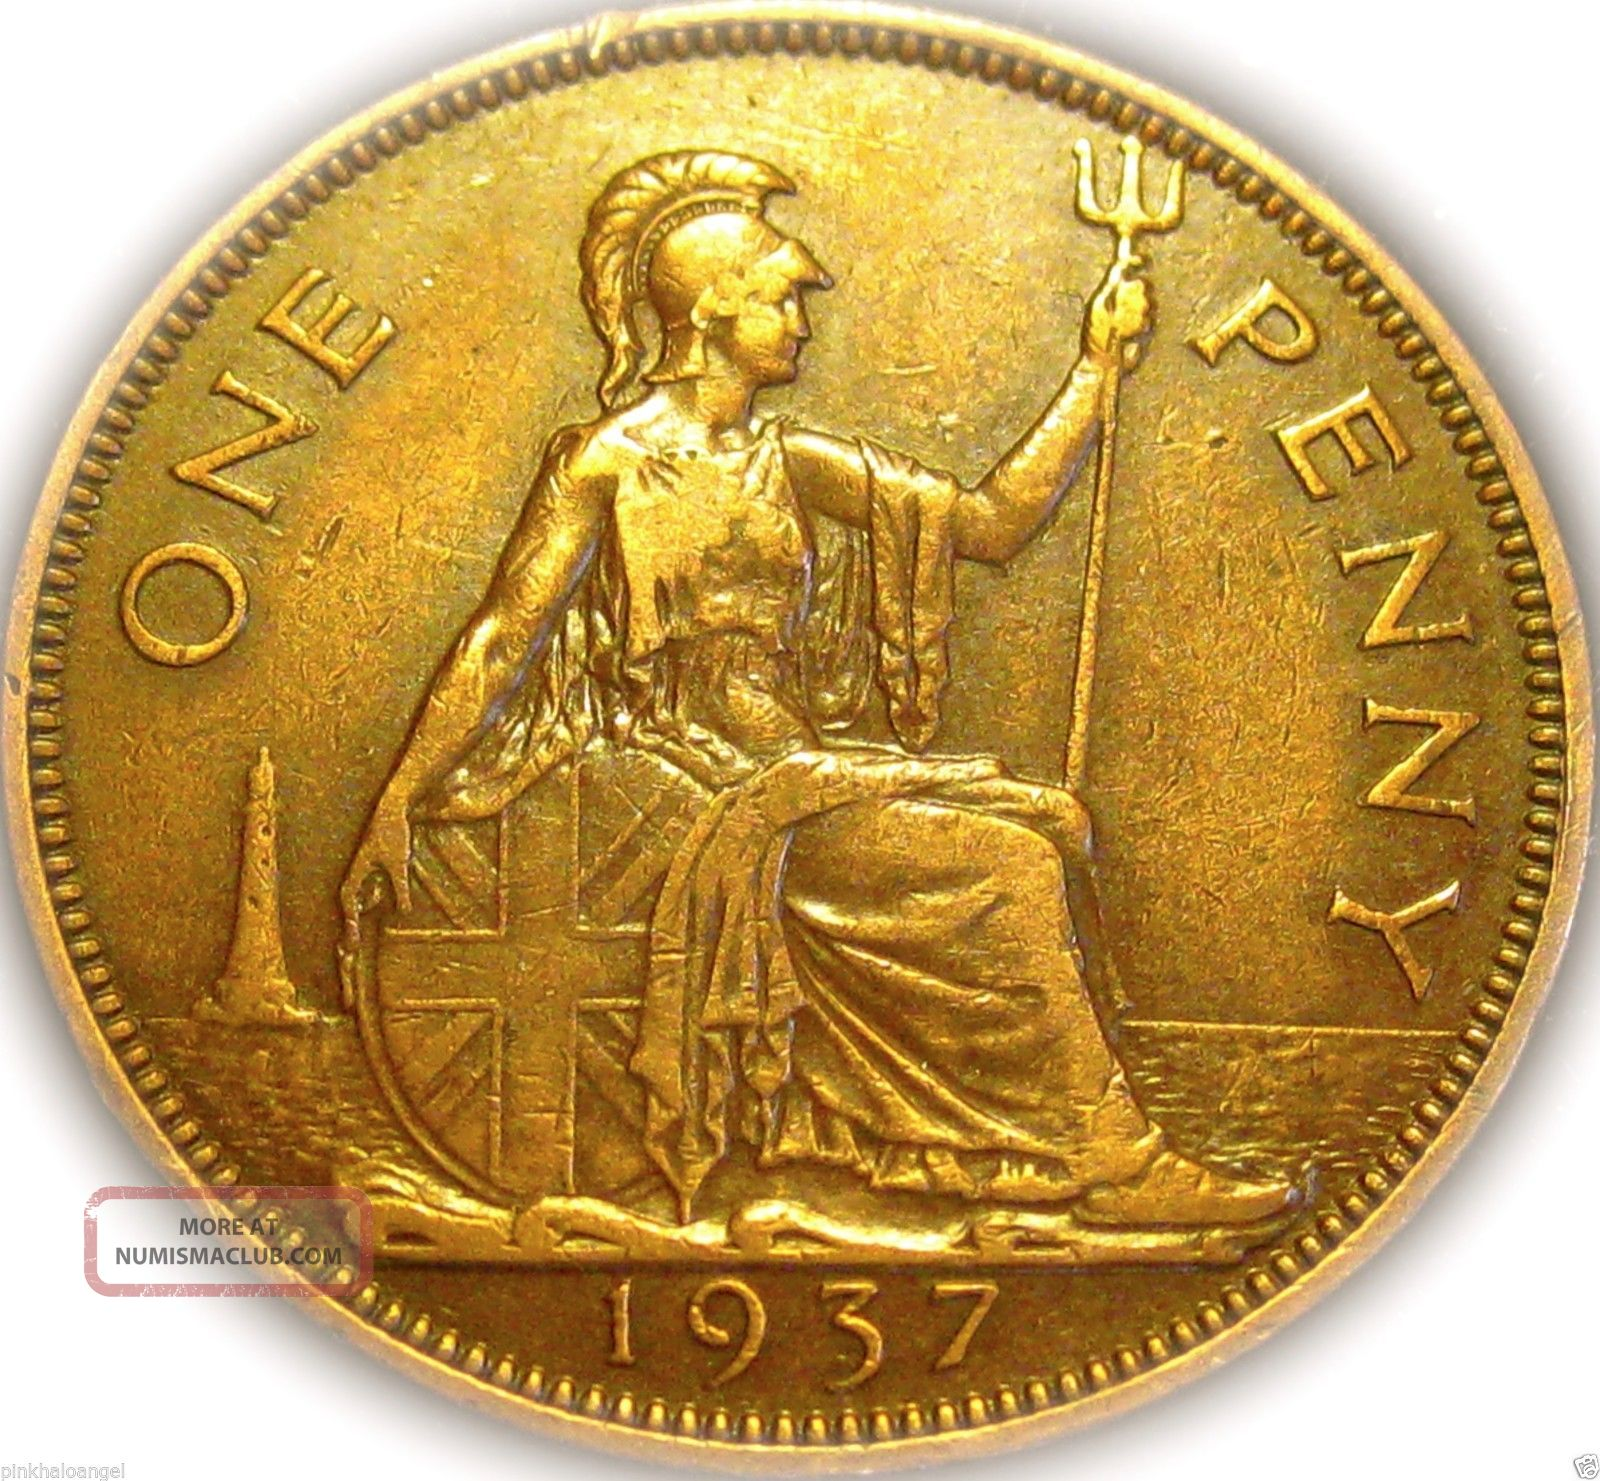 ♡ United Kingdom - 1937 Penny Coin - Large Coin King George Vi - S&h Discounts UK (Great Britain) photo